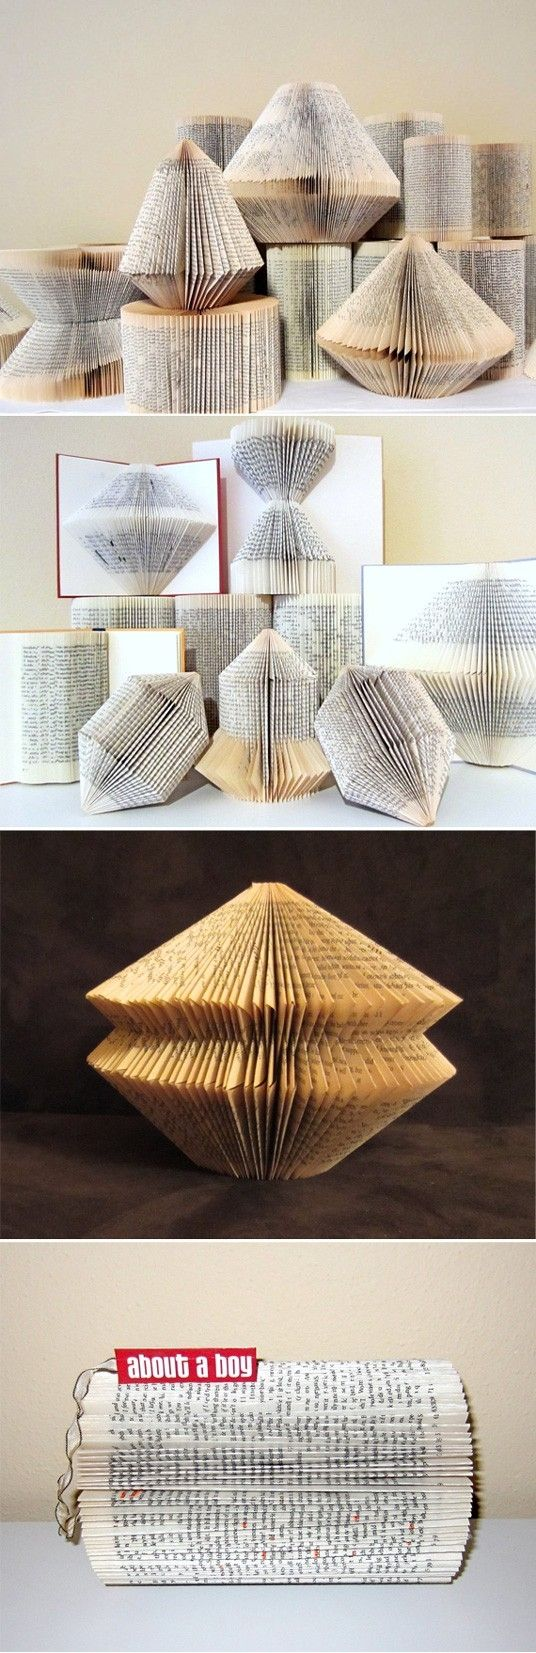 Folded book art - not that I believe in ruining books, but if it's be bad shape already this is cool